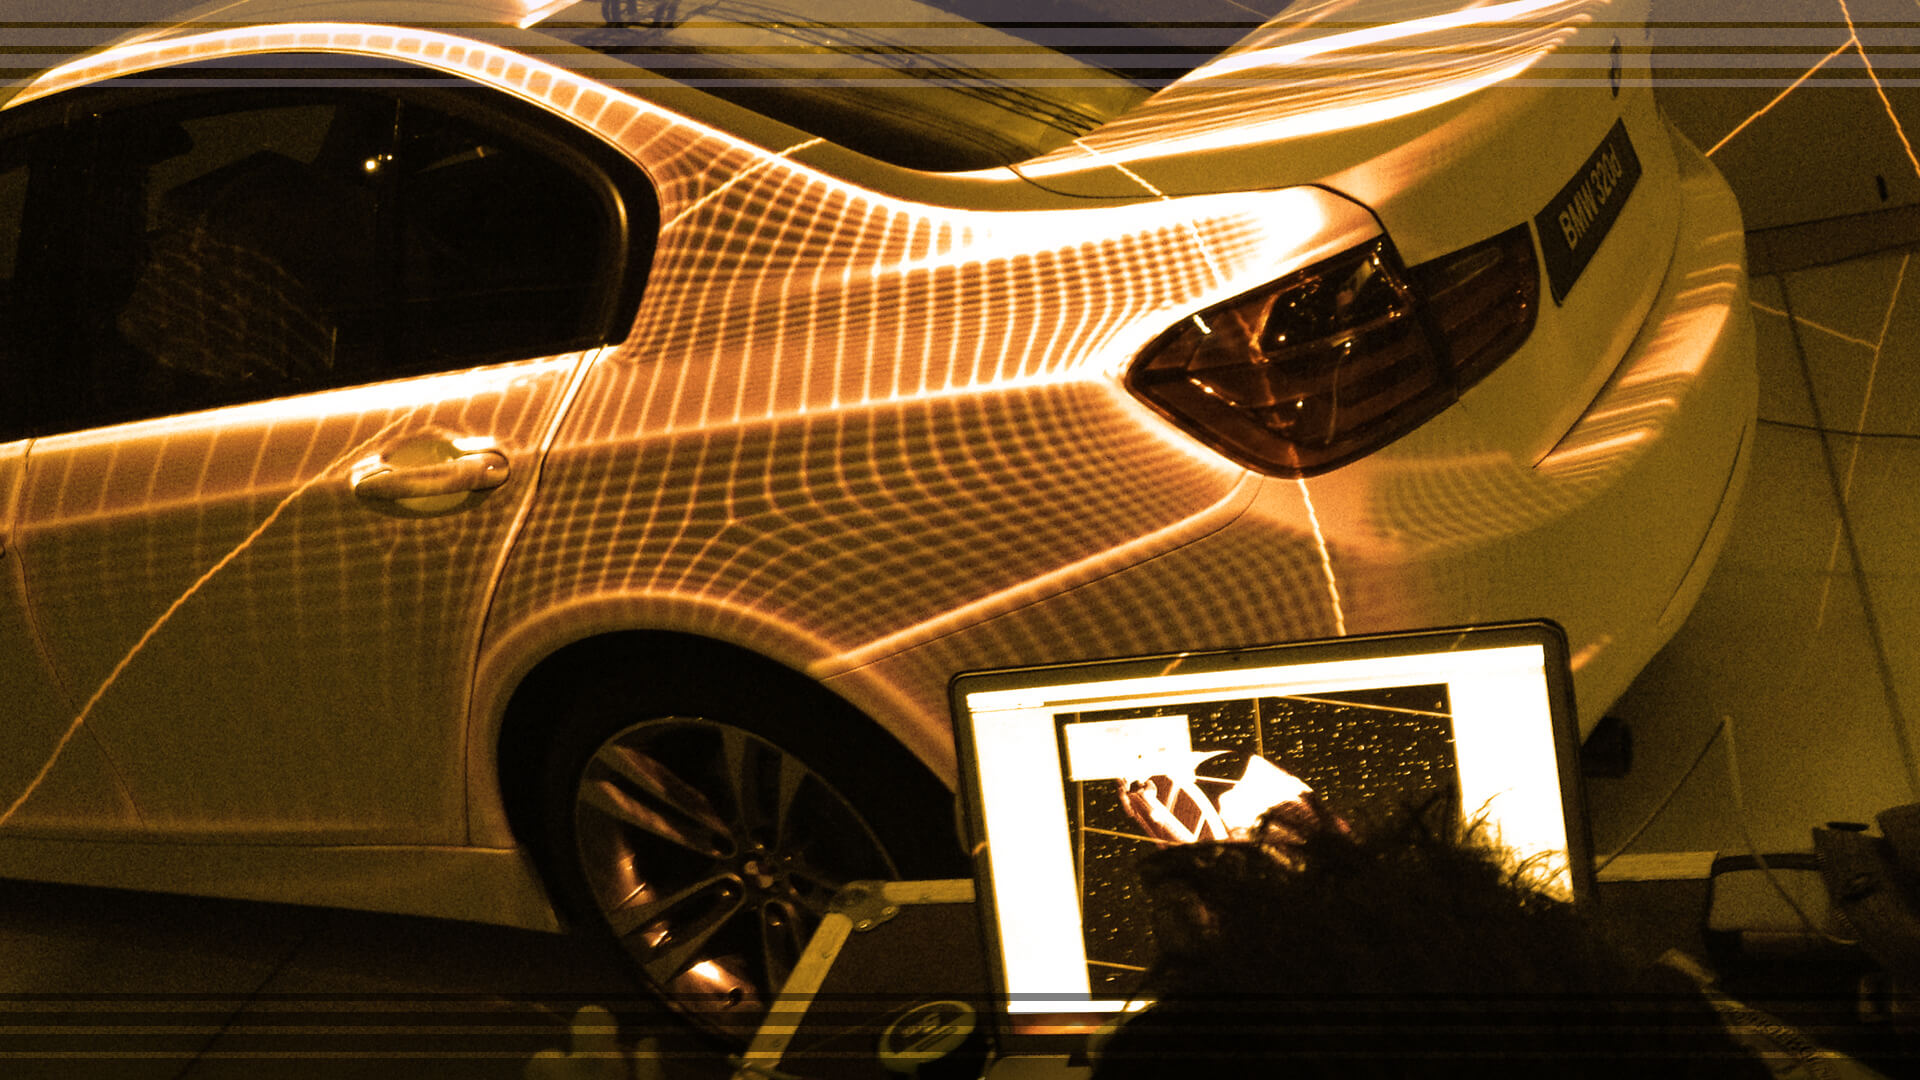 Video mapping on cars and objects